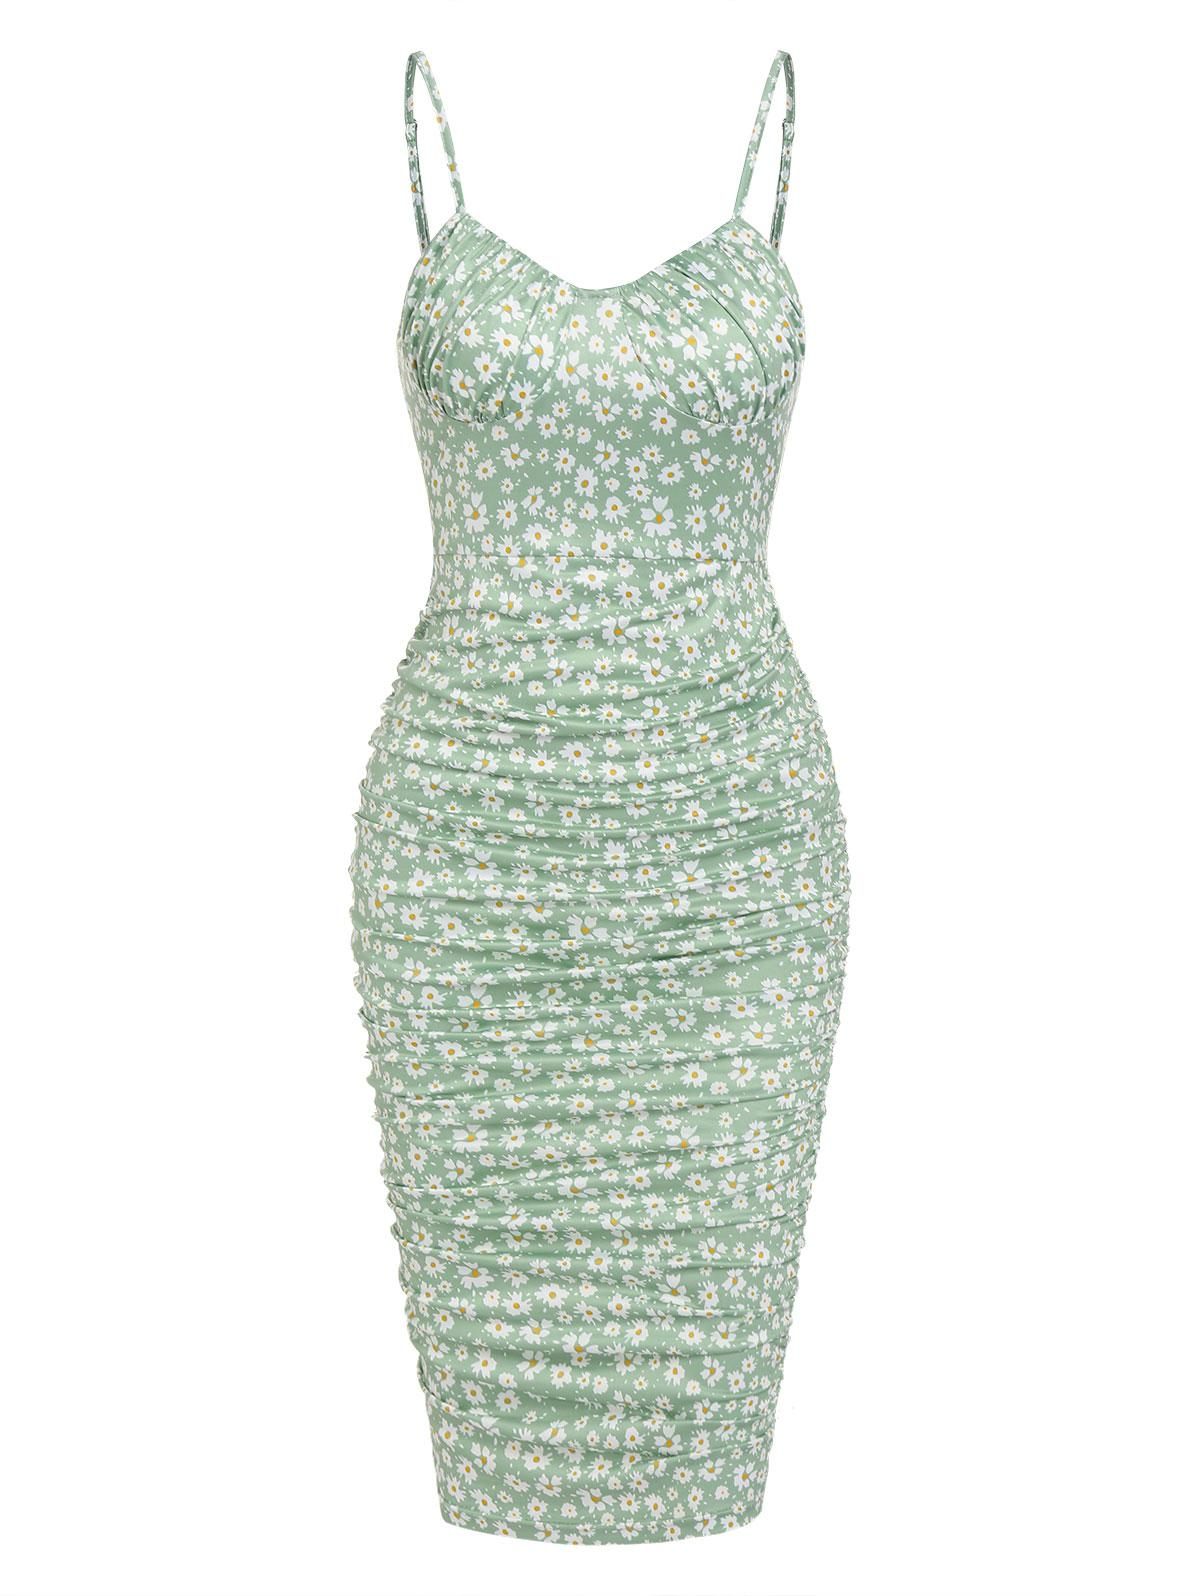 ZAFUL Ditsy Floral Ruched Bodycon Cami Dress